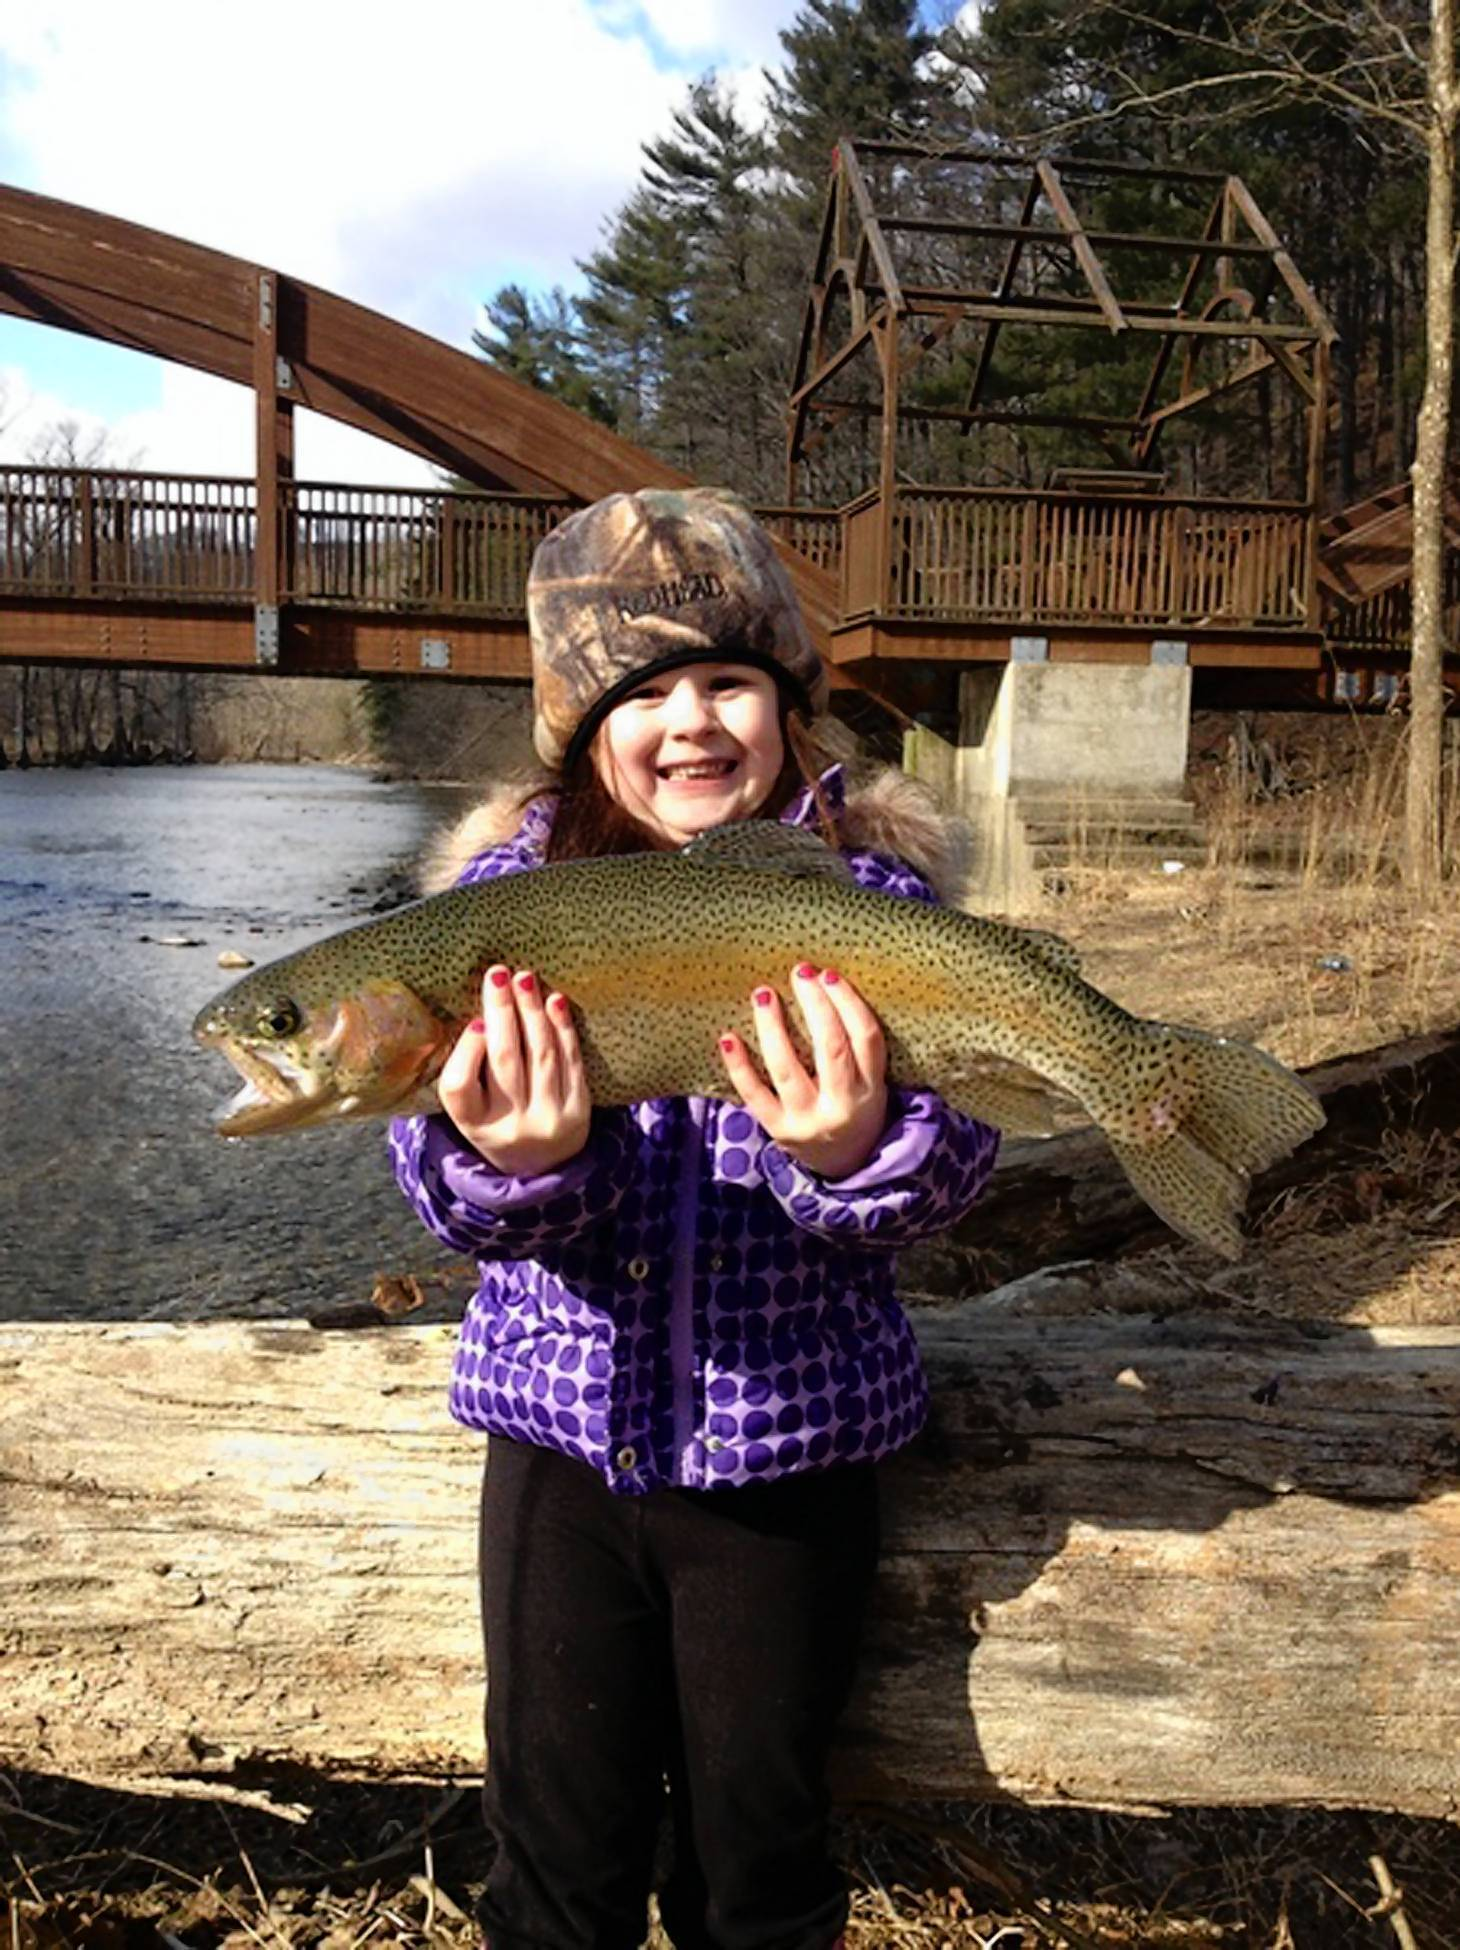 Statewide trout season opens Saturday - The Morning Call